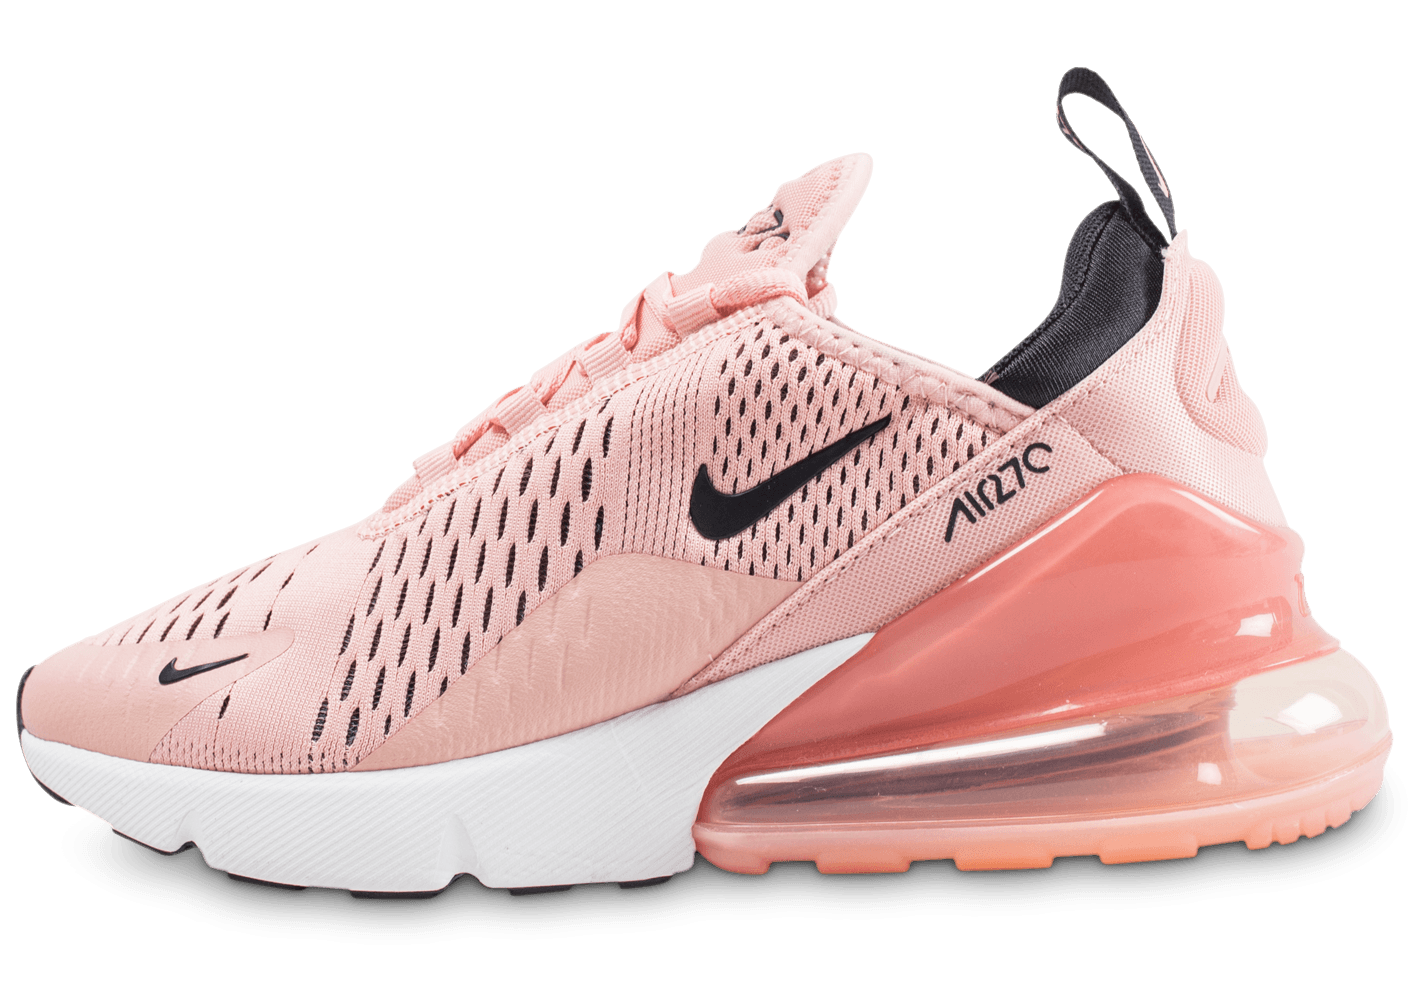 buy > nike air max 270 femme grise et rose, Up to 62% OFF